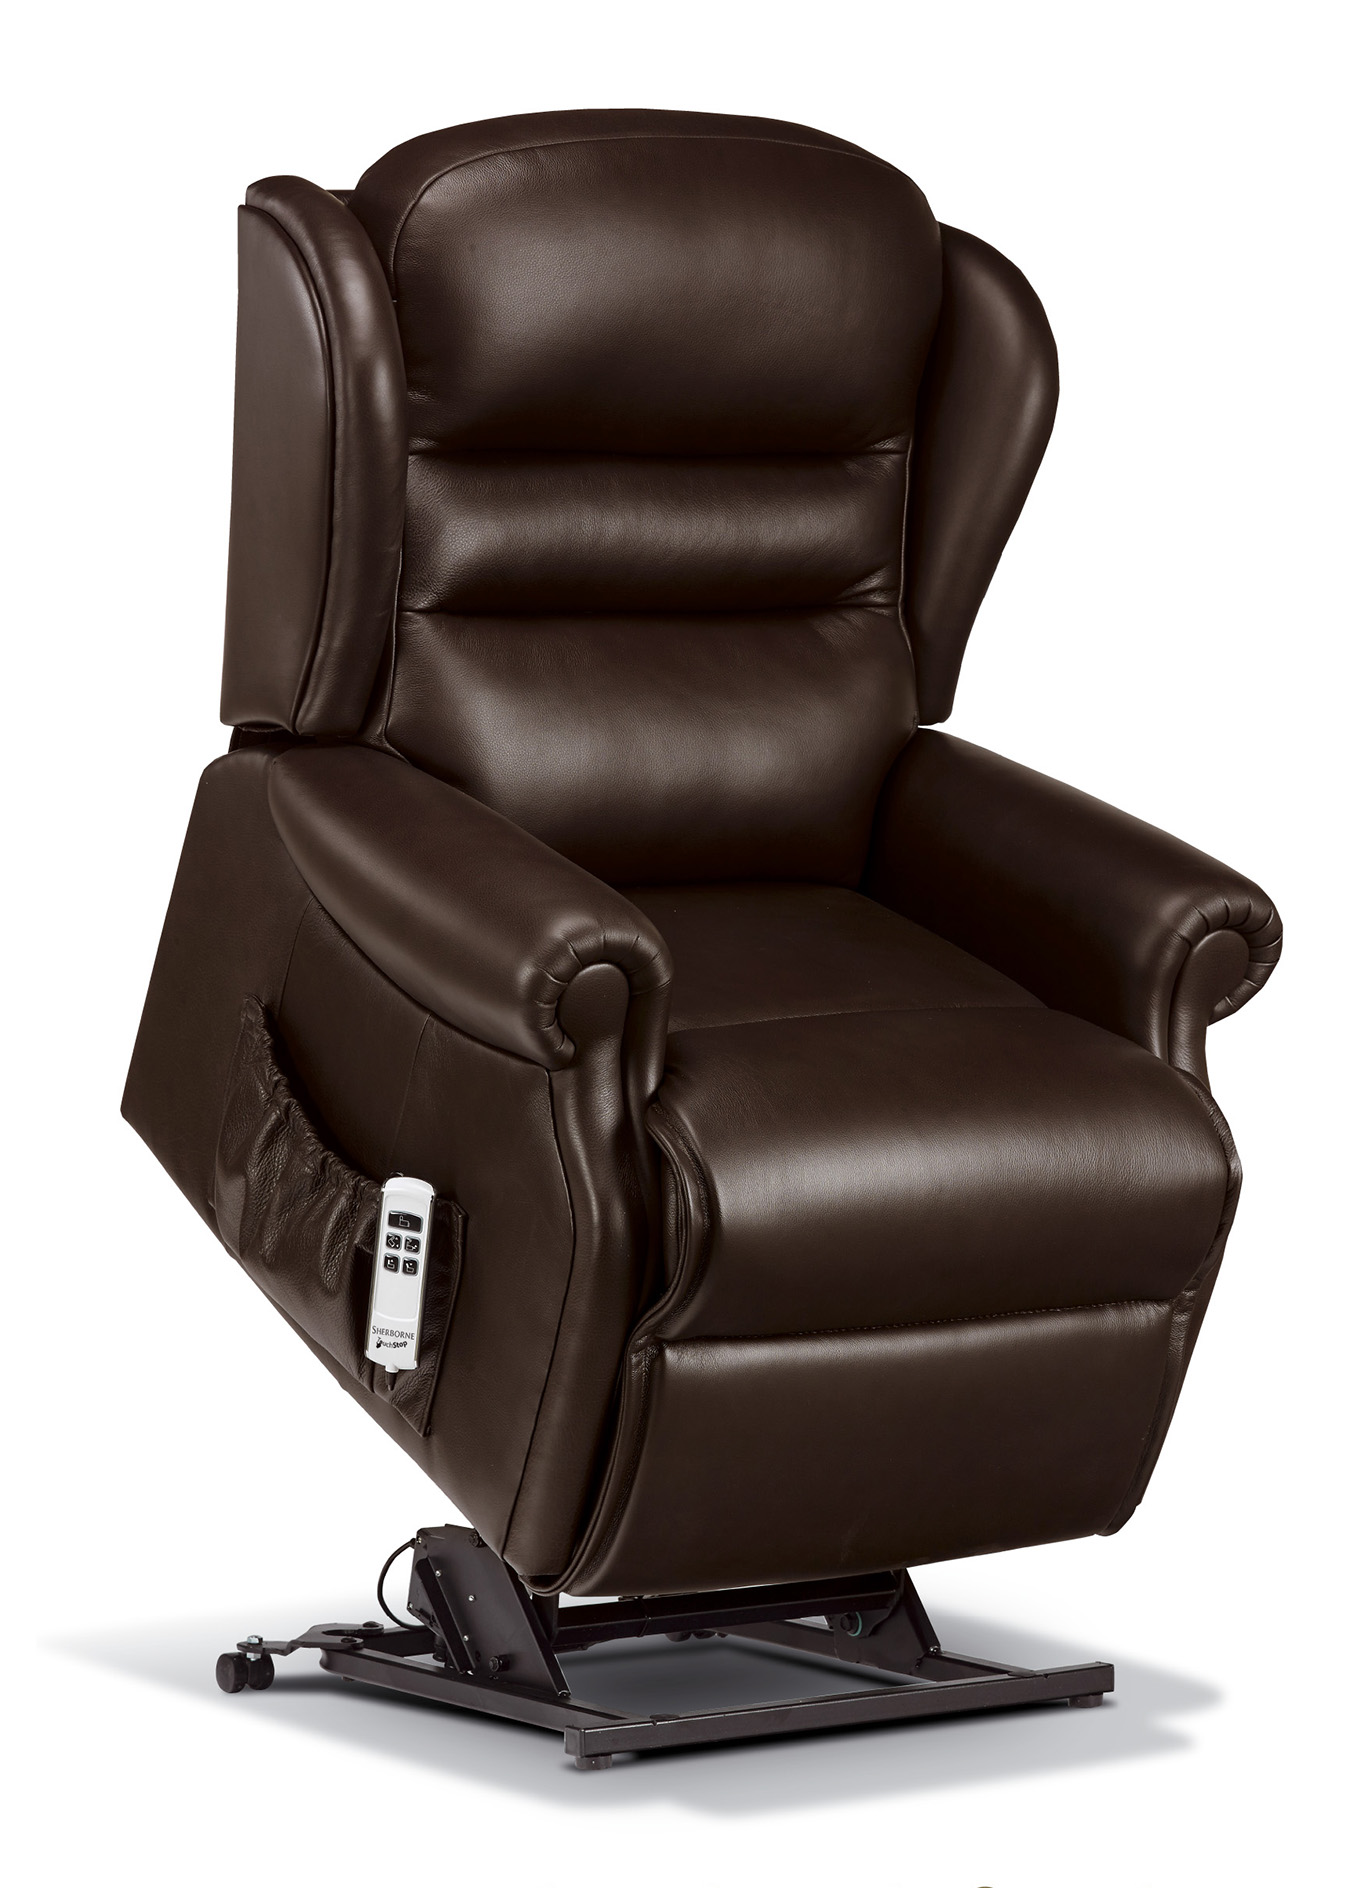 Electric Reclining Chair Ashford Standard Leather Electric Riser Recliner